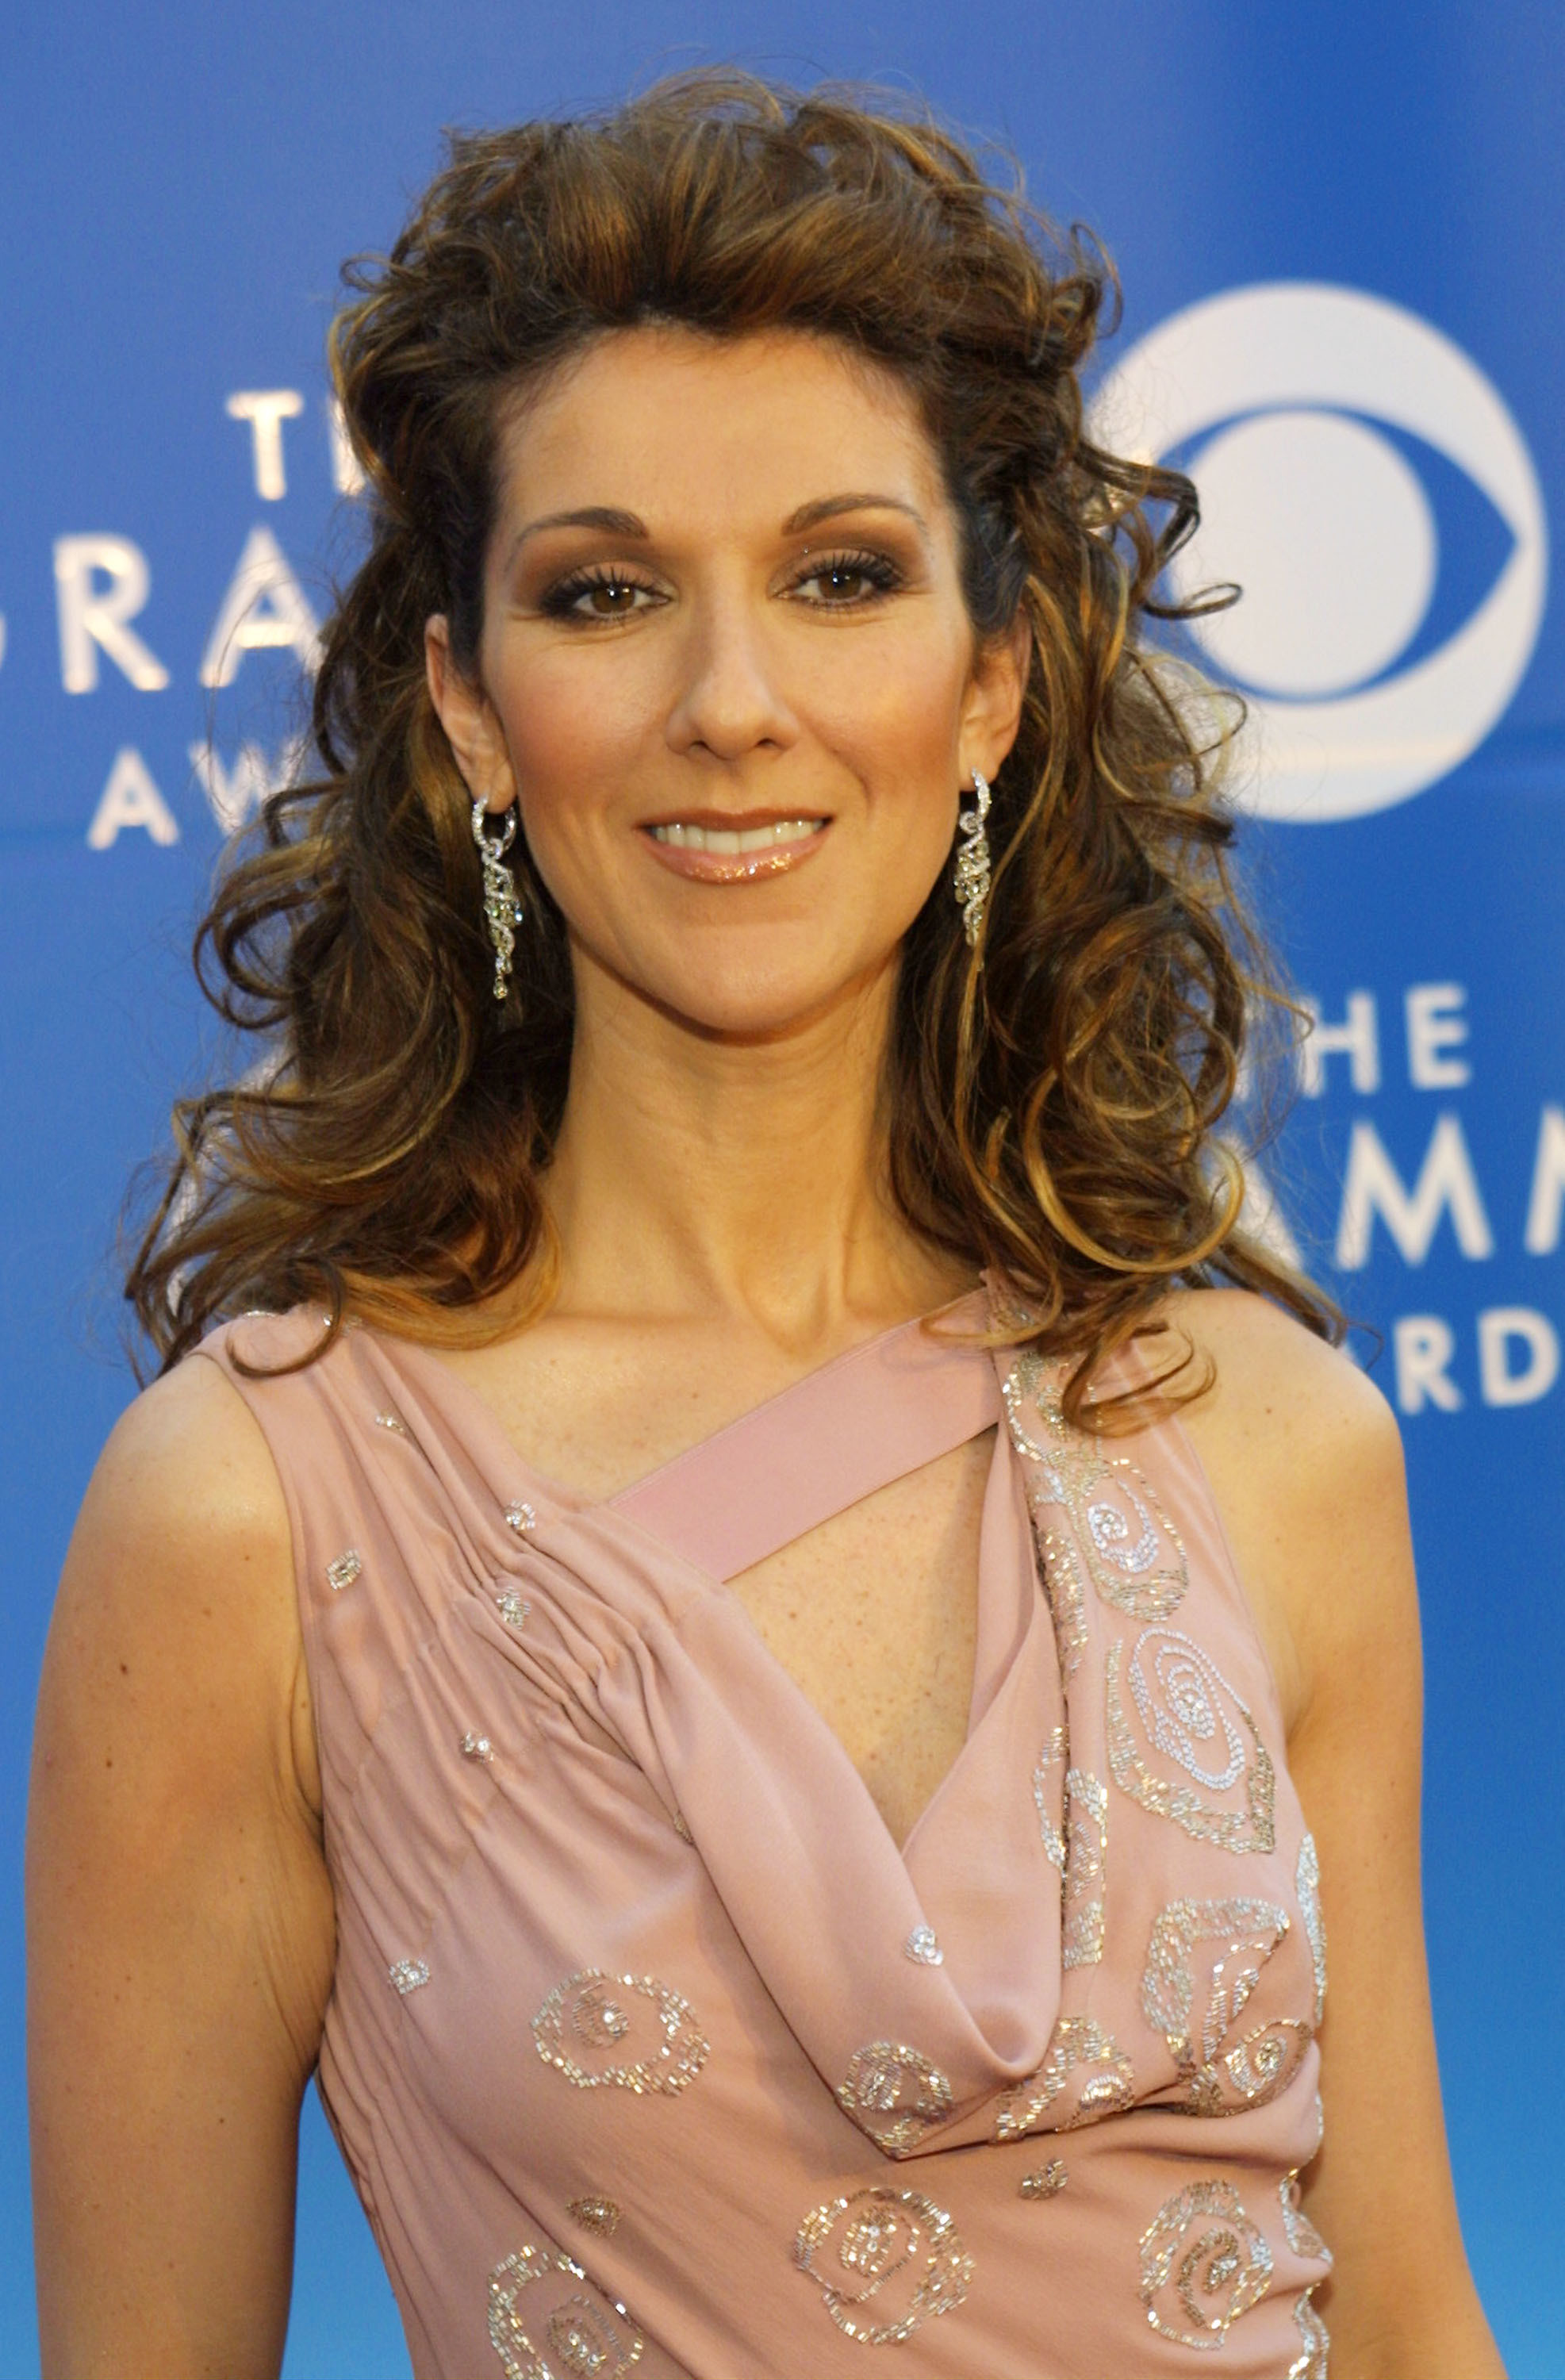 Celine Dion S Natural Hair Color Brown Do You Know The Natural Hair Color Of Your Favorite Celebs Stylebistro